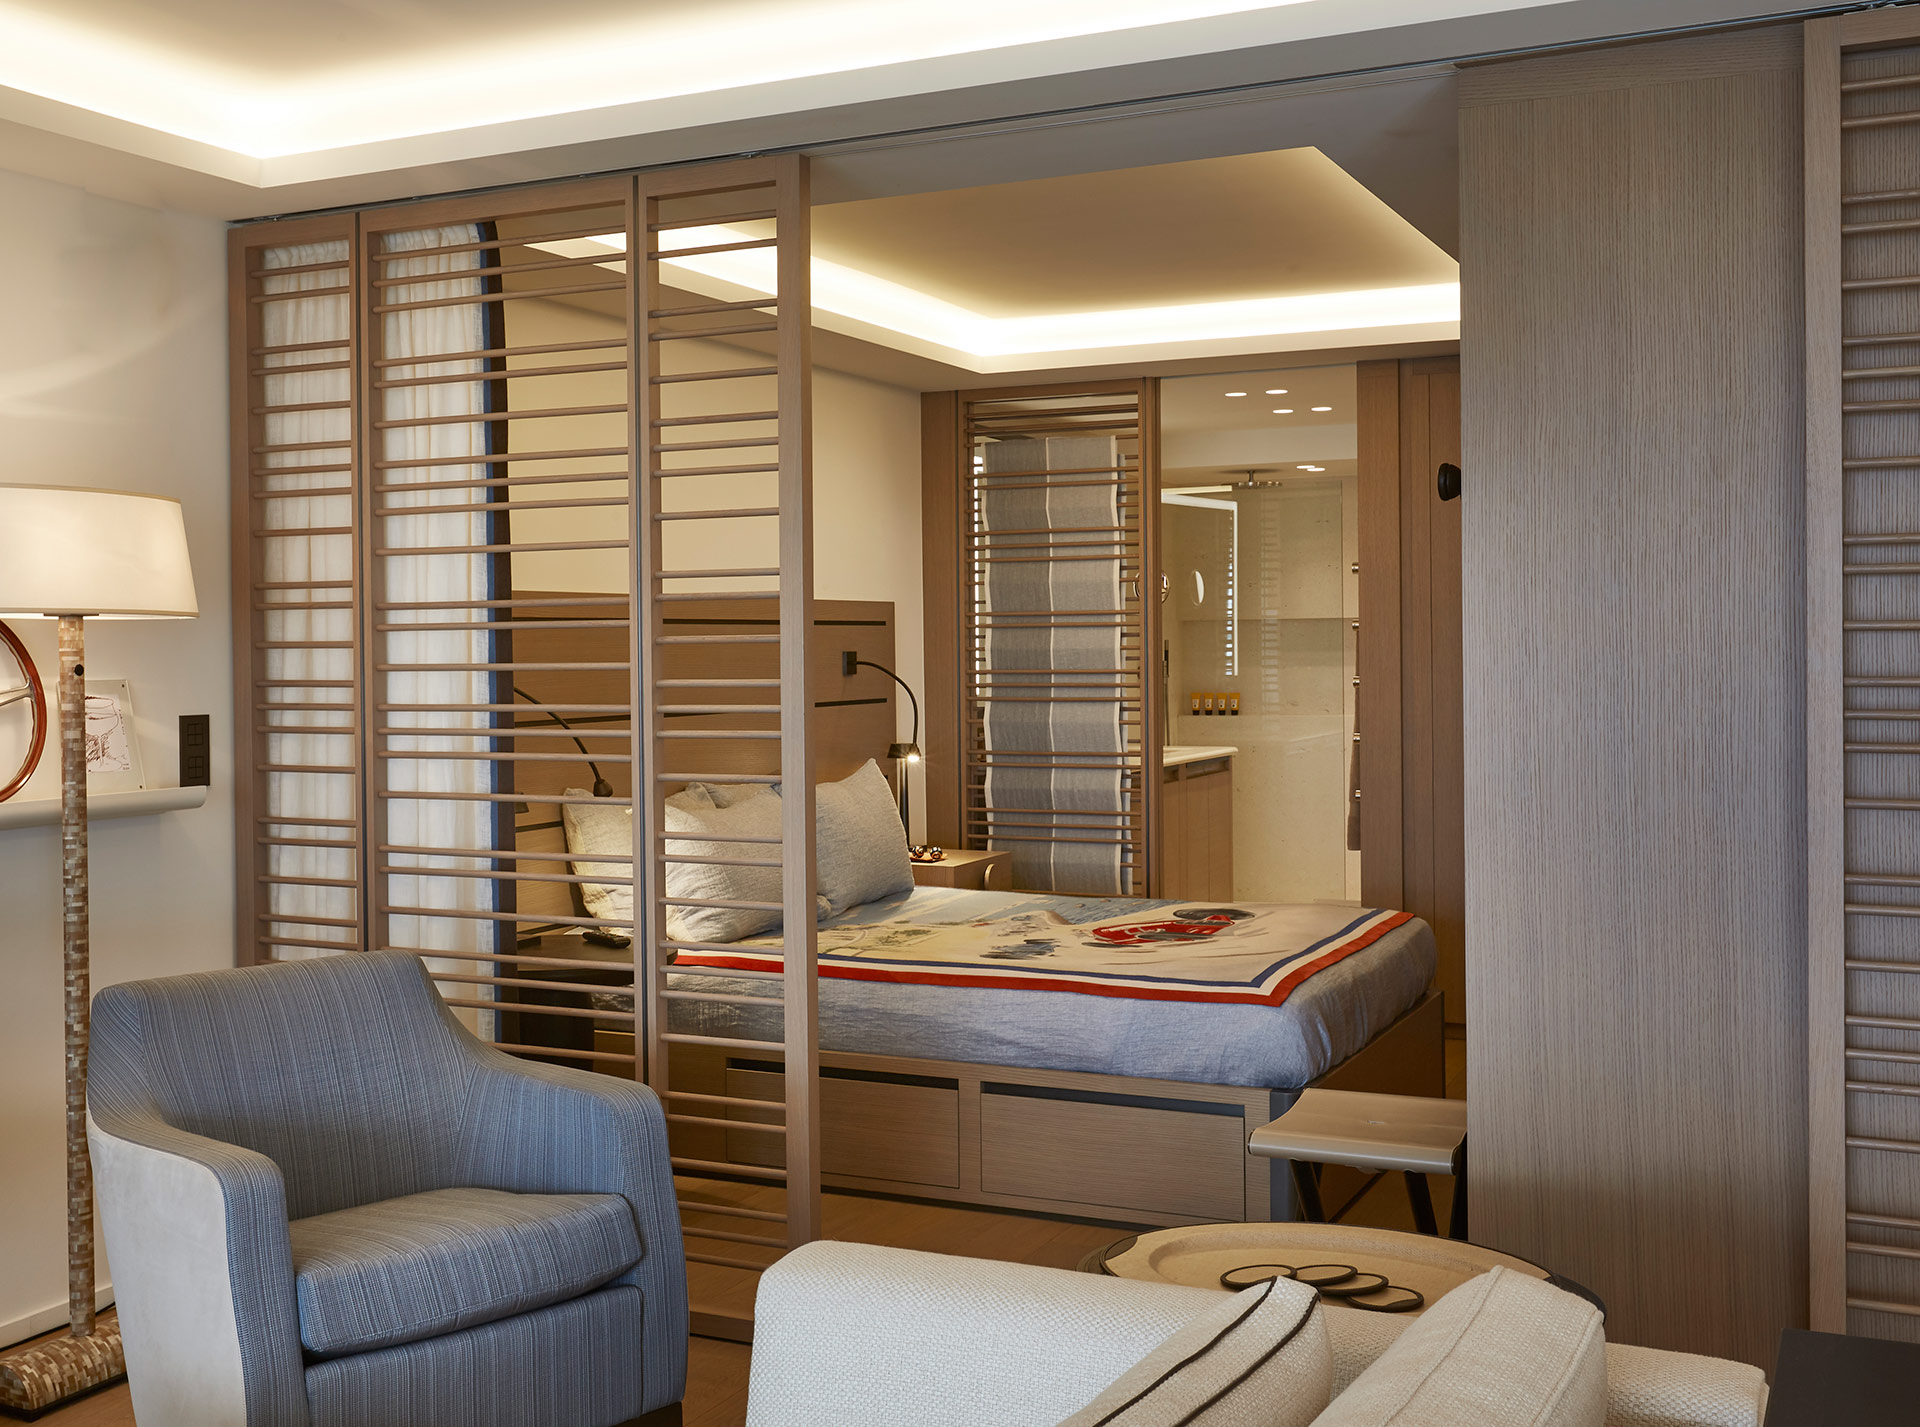 Bedroom of a private residence in Montecarlo furnished with Promemoria | Promemoria